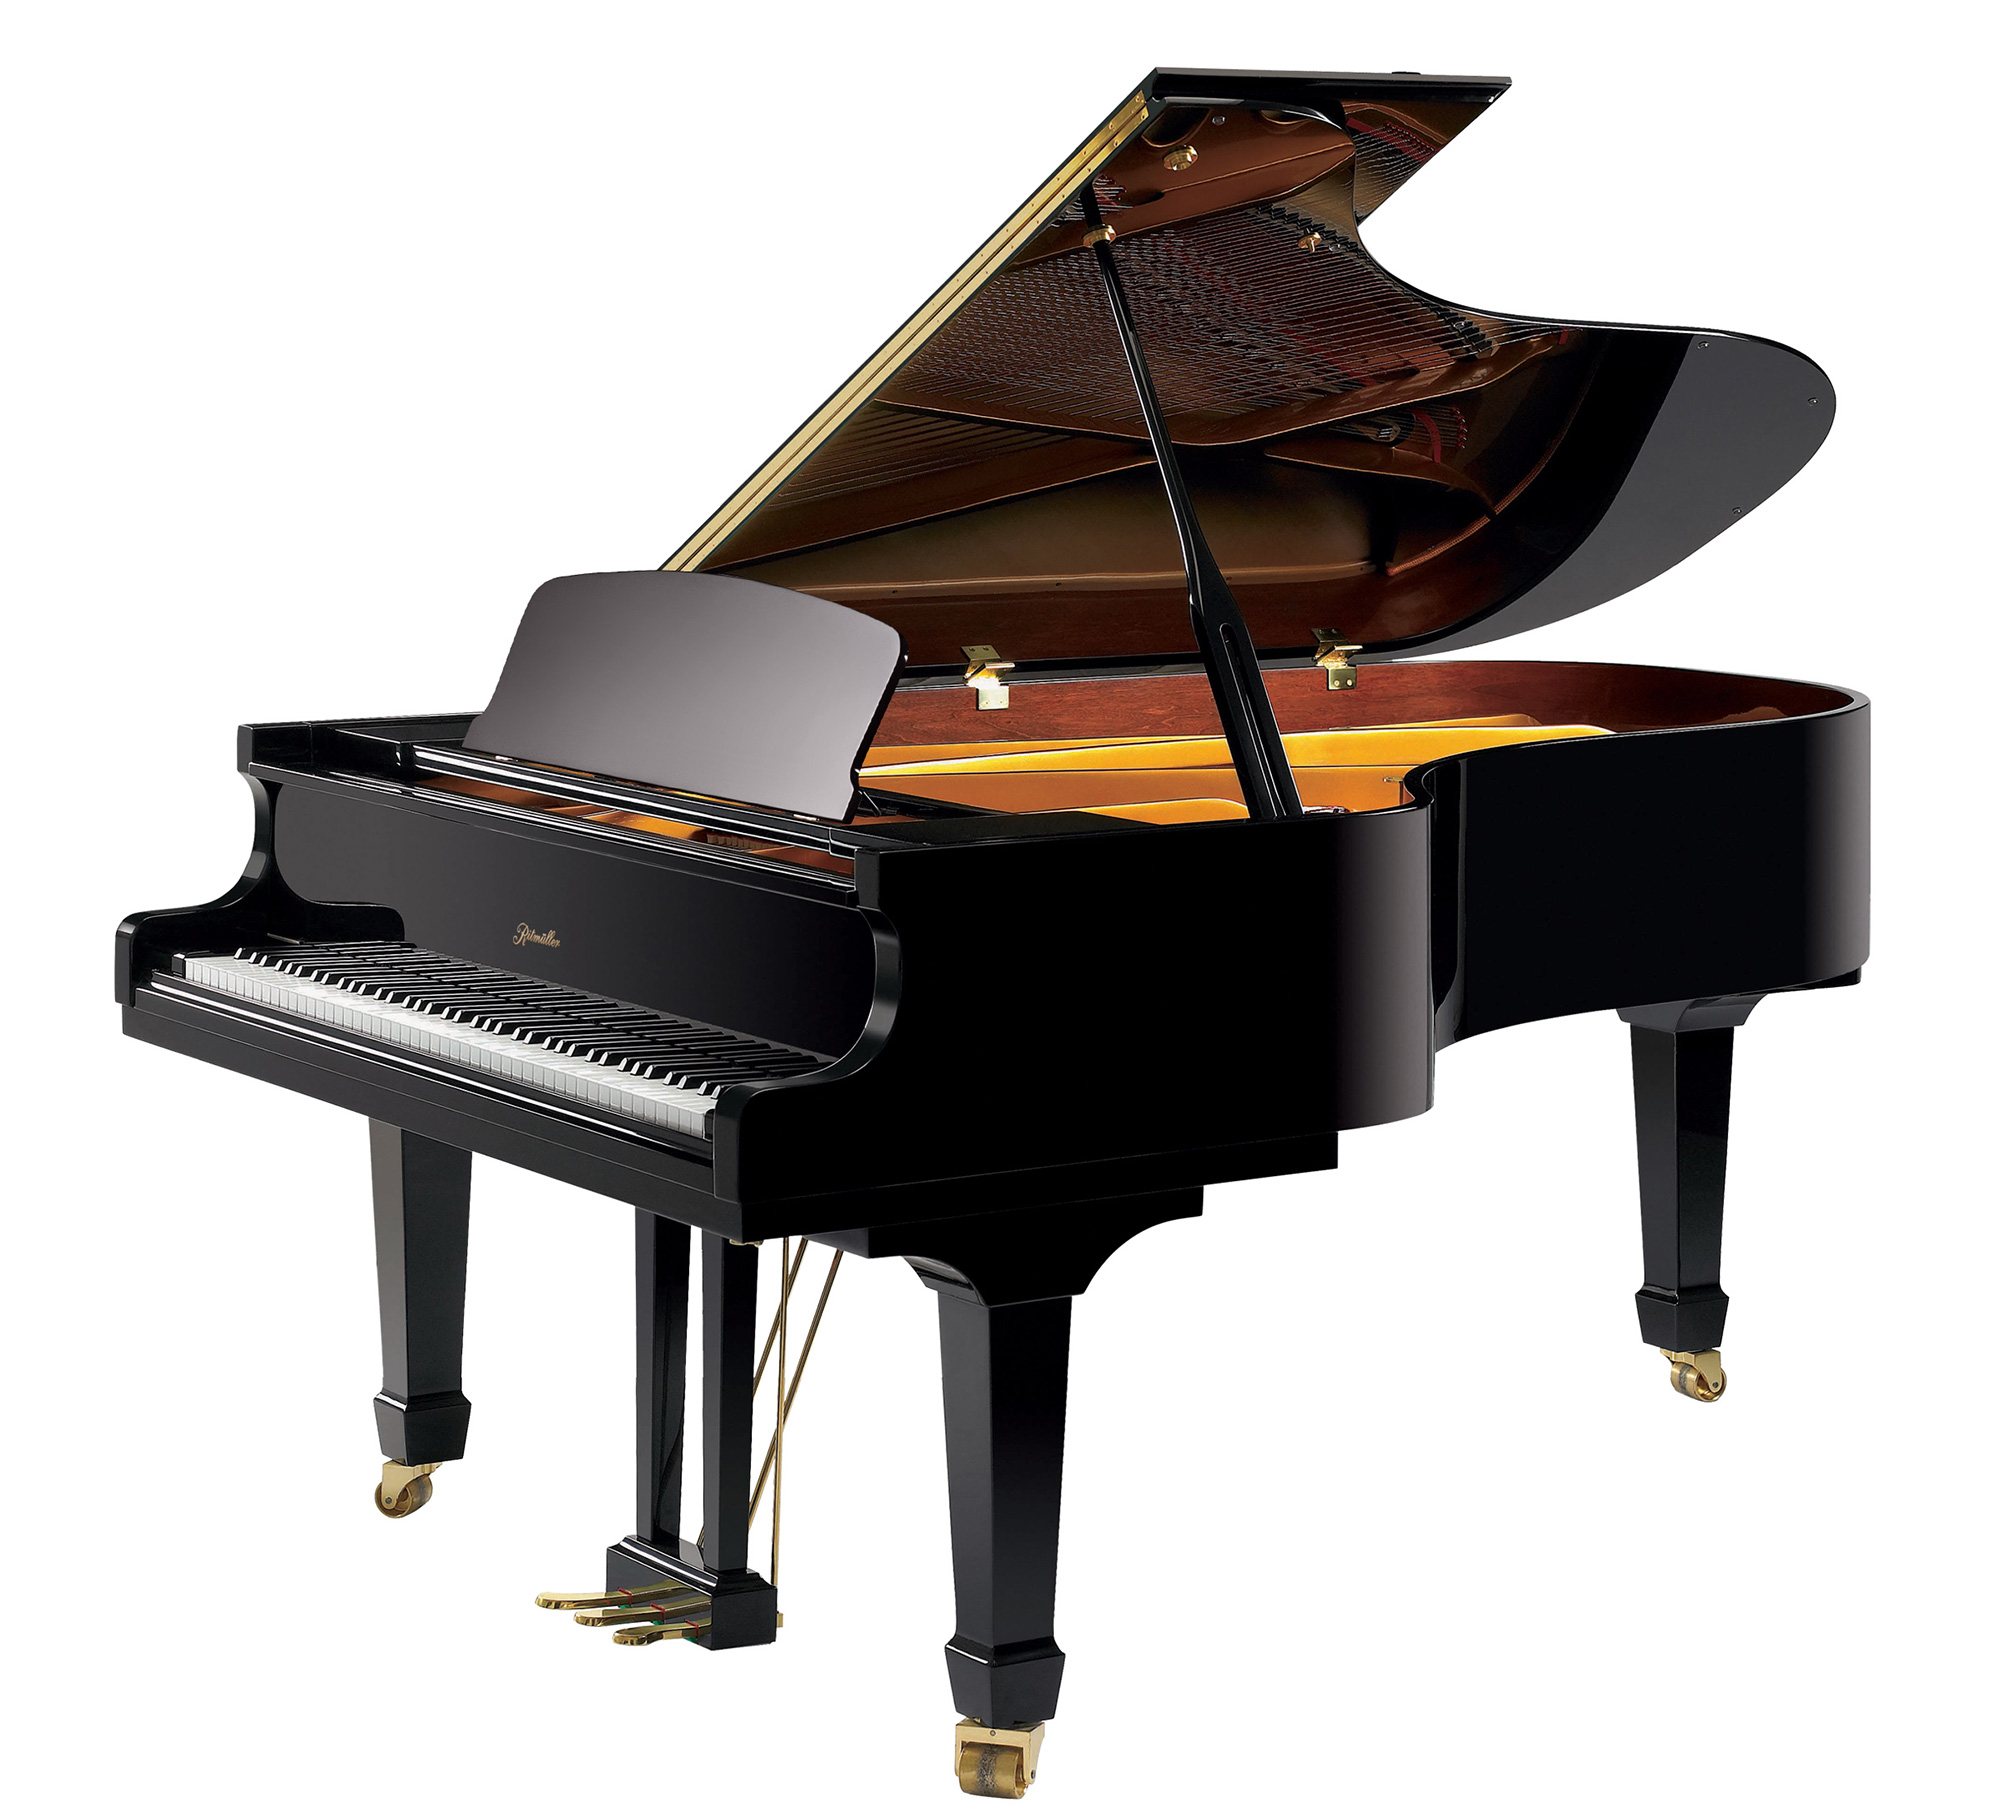 new-piano-for-sale-ritmuller-gh212r